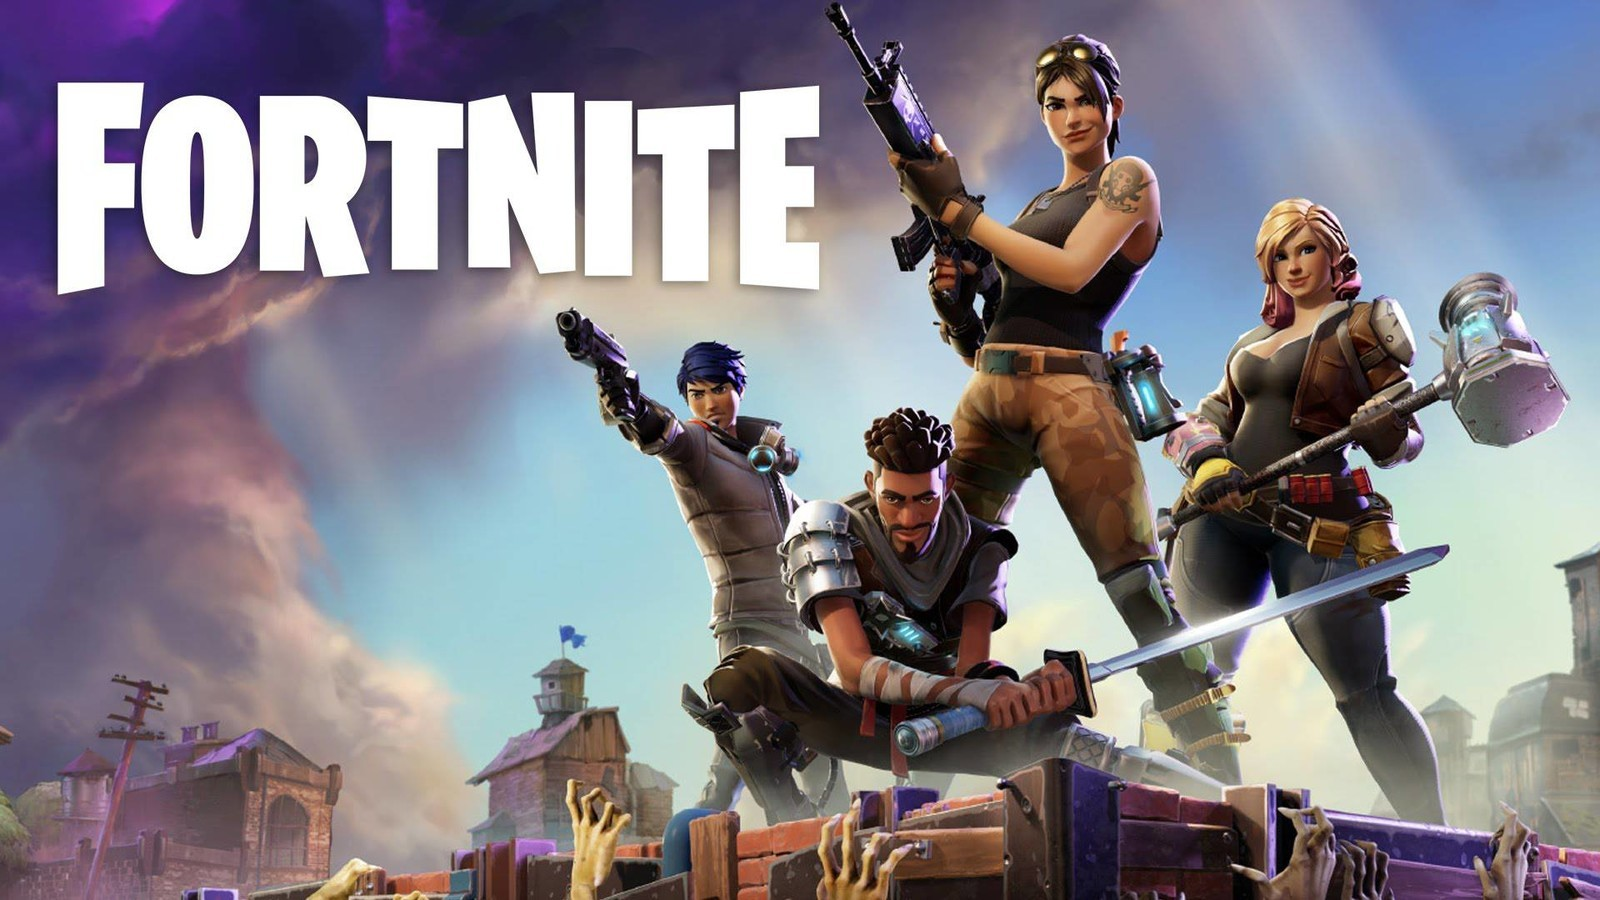 【TOPGAMETOOLS.CLUB FORTNITE】 Vbucks and Extra Vbucks FOR ANDROID IOS PC PLAYSTATION | 100% WORKING METHOD | GET UNLIMITED RESOURCES NOW